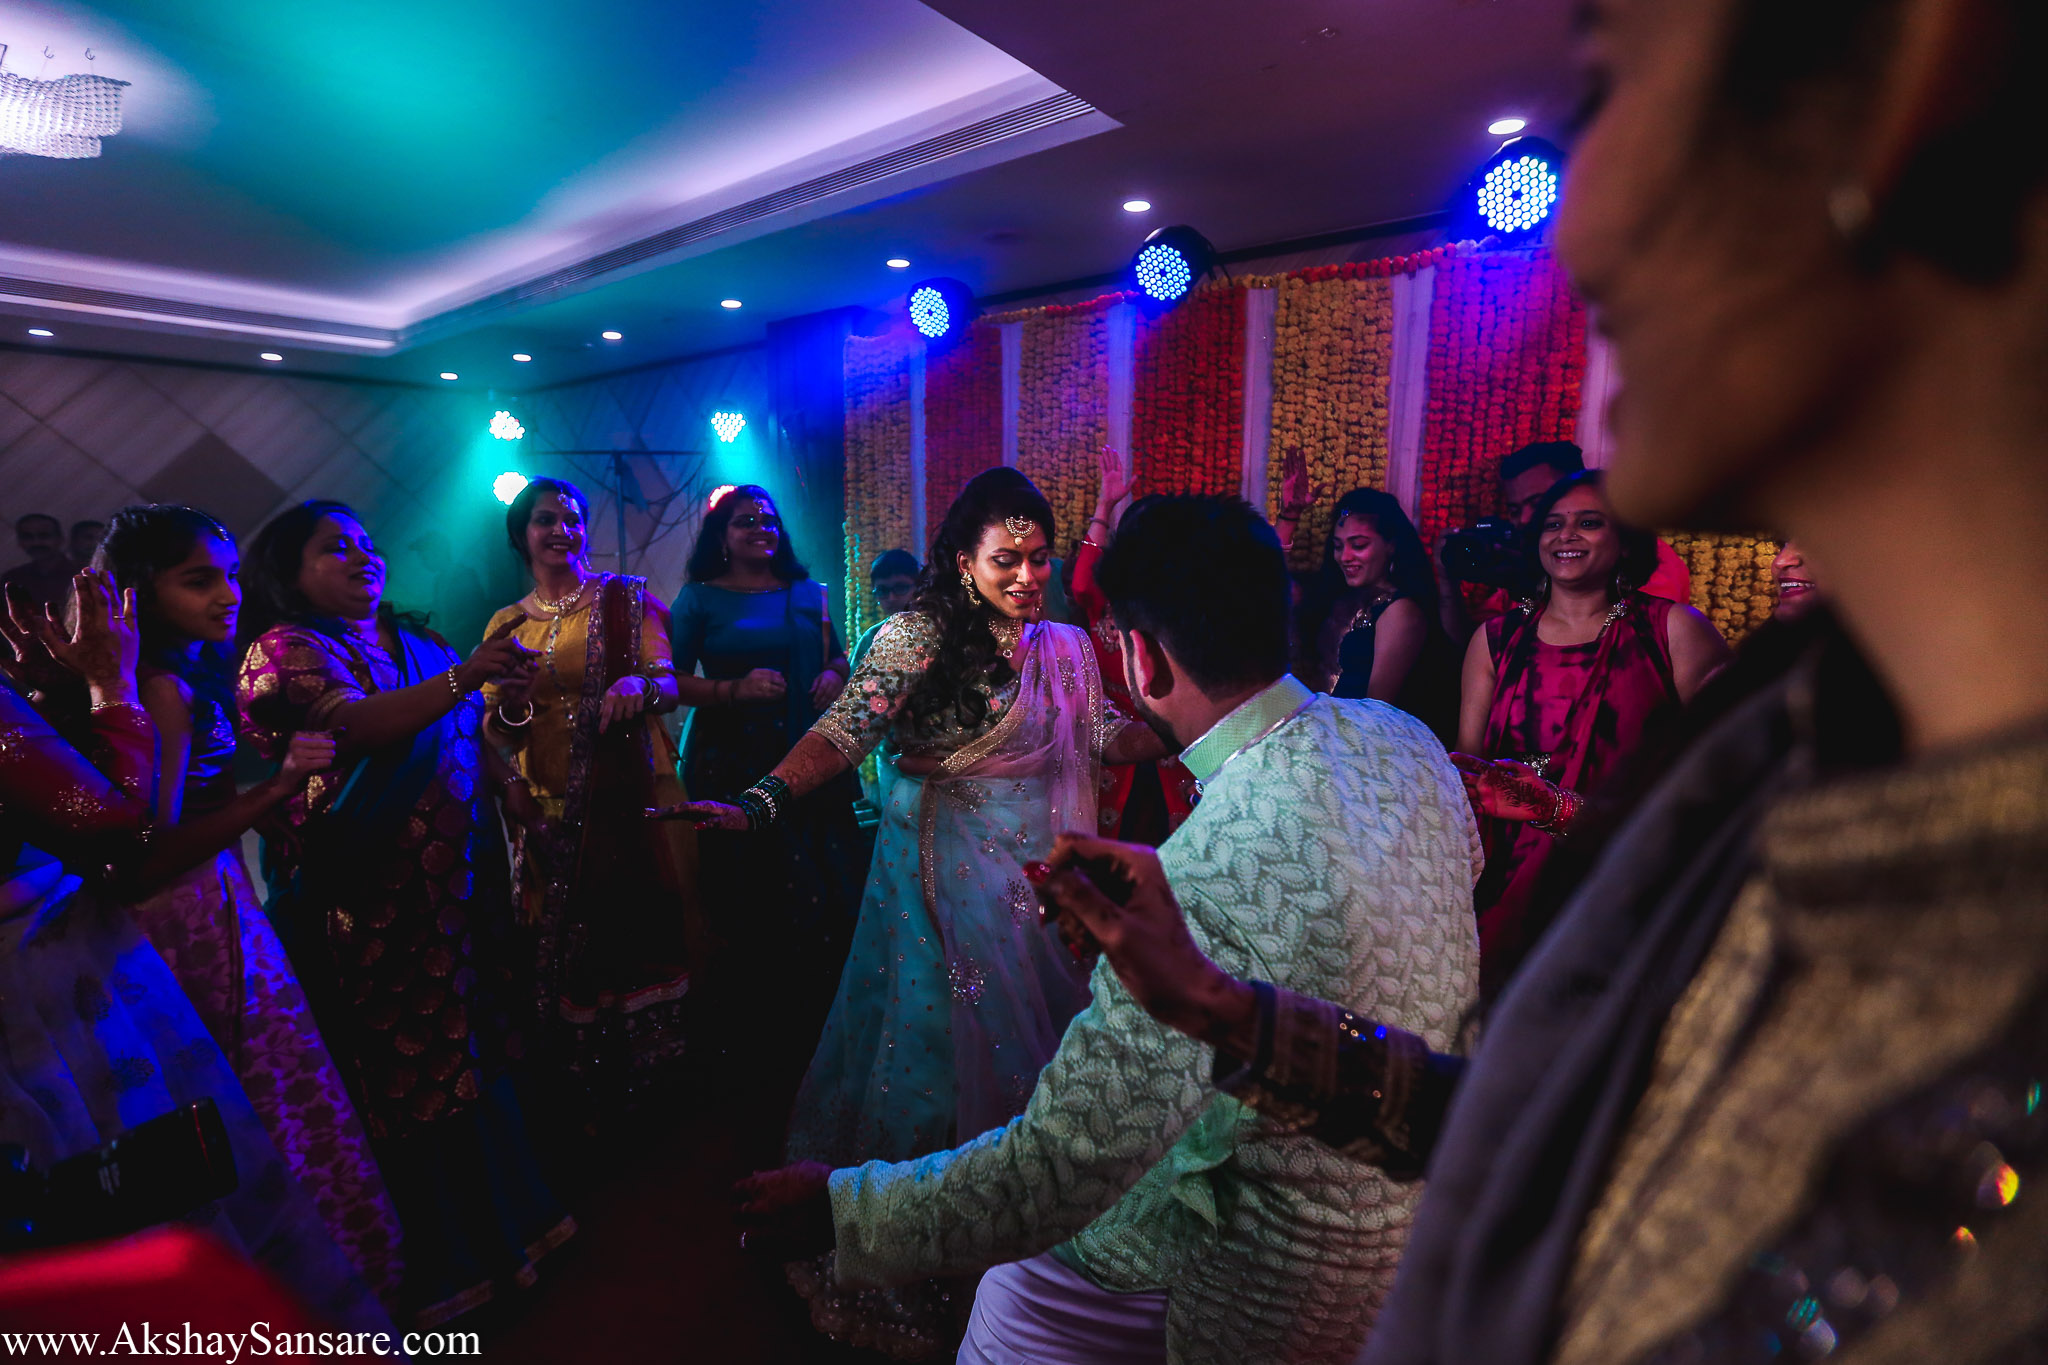 Ajay & Devika Akshay Sansare Photography Best Candid wedding photographer in mumbai india18.jpg